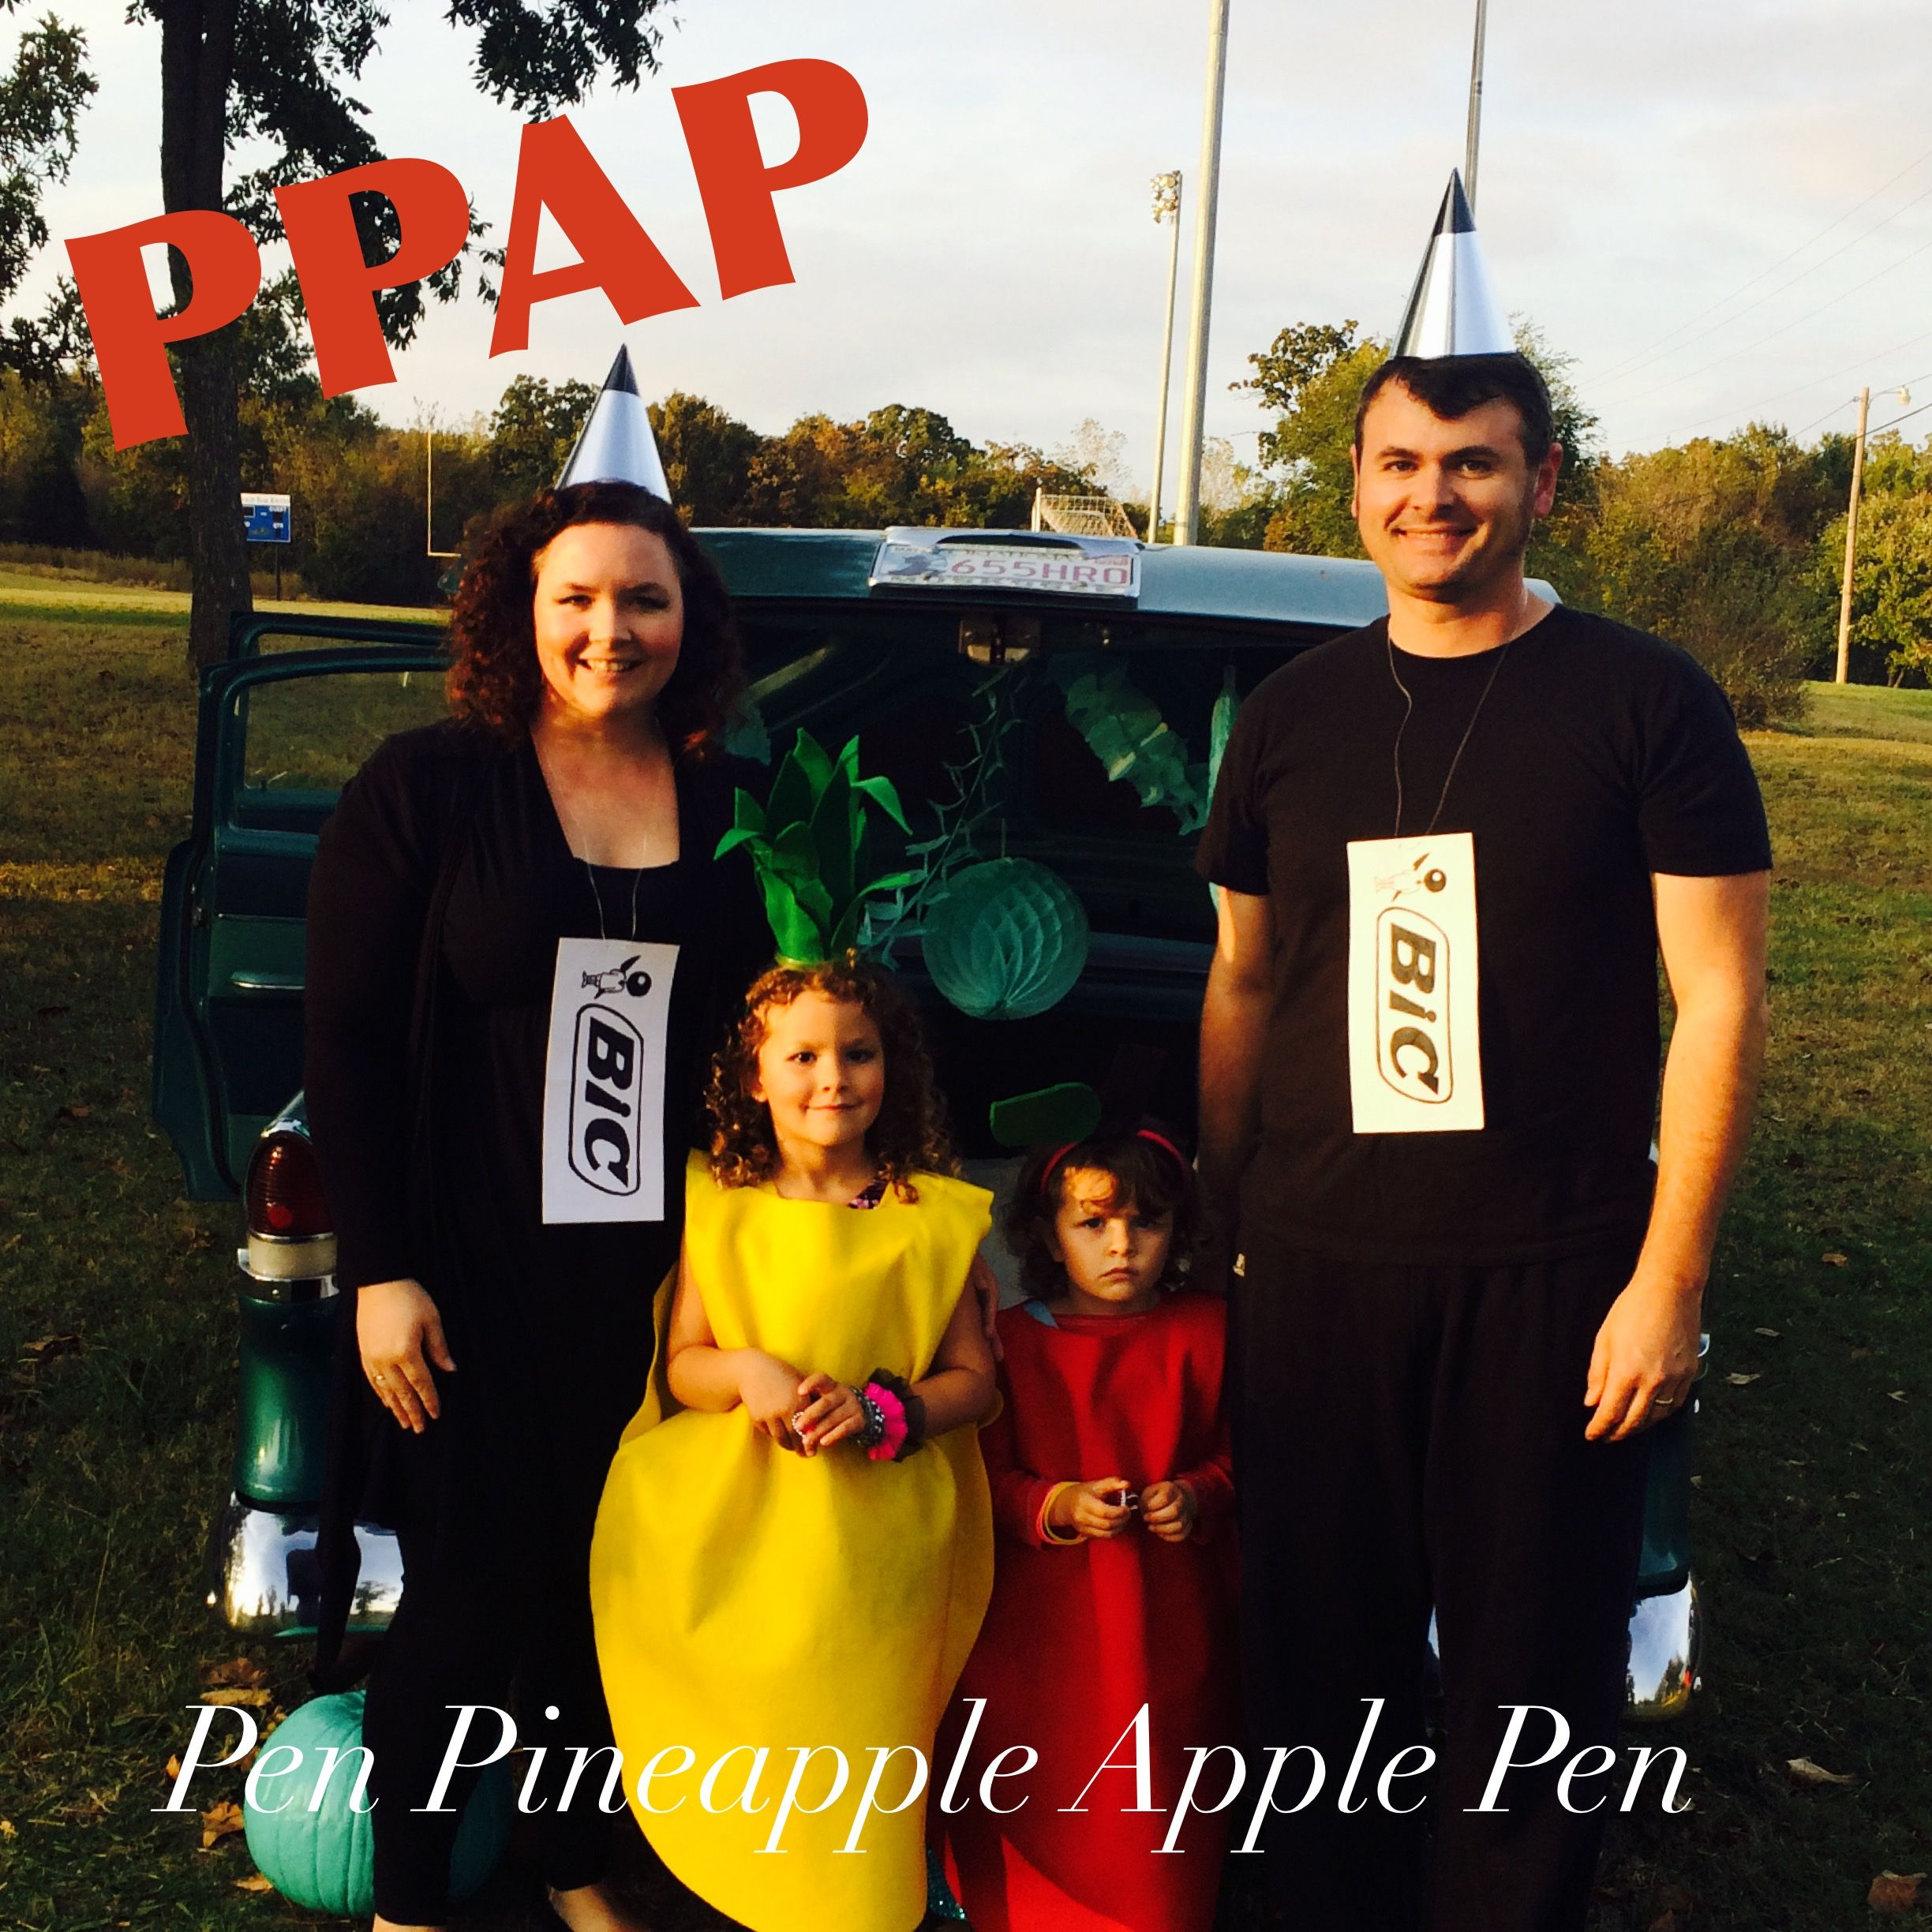 ppap family halloween costumes pen pineapple apple pen costume - Apple Halloween Costumes